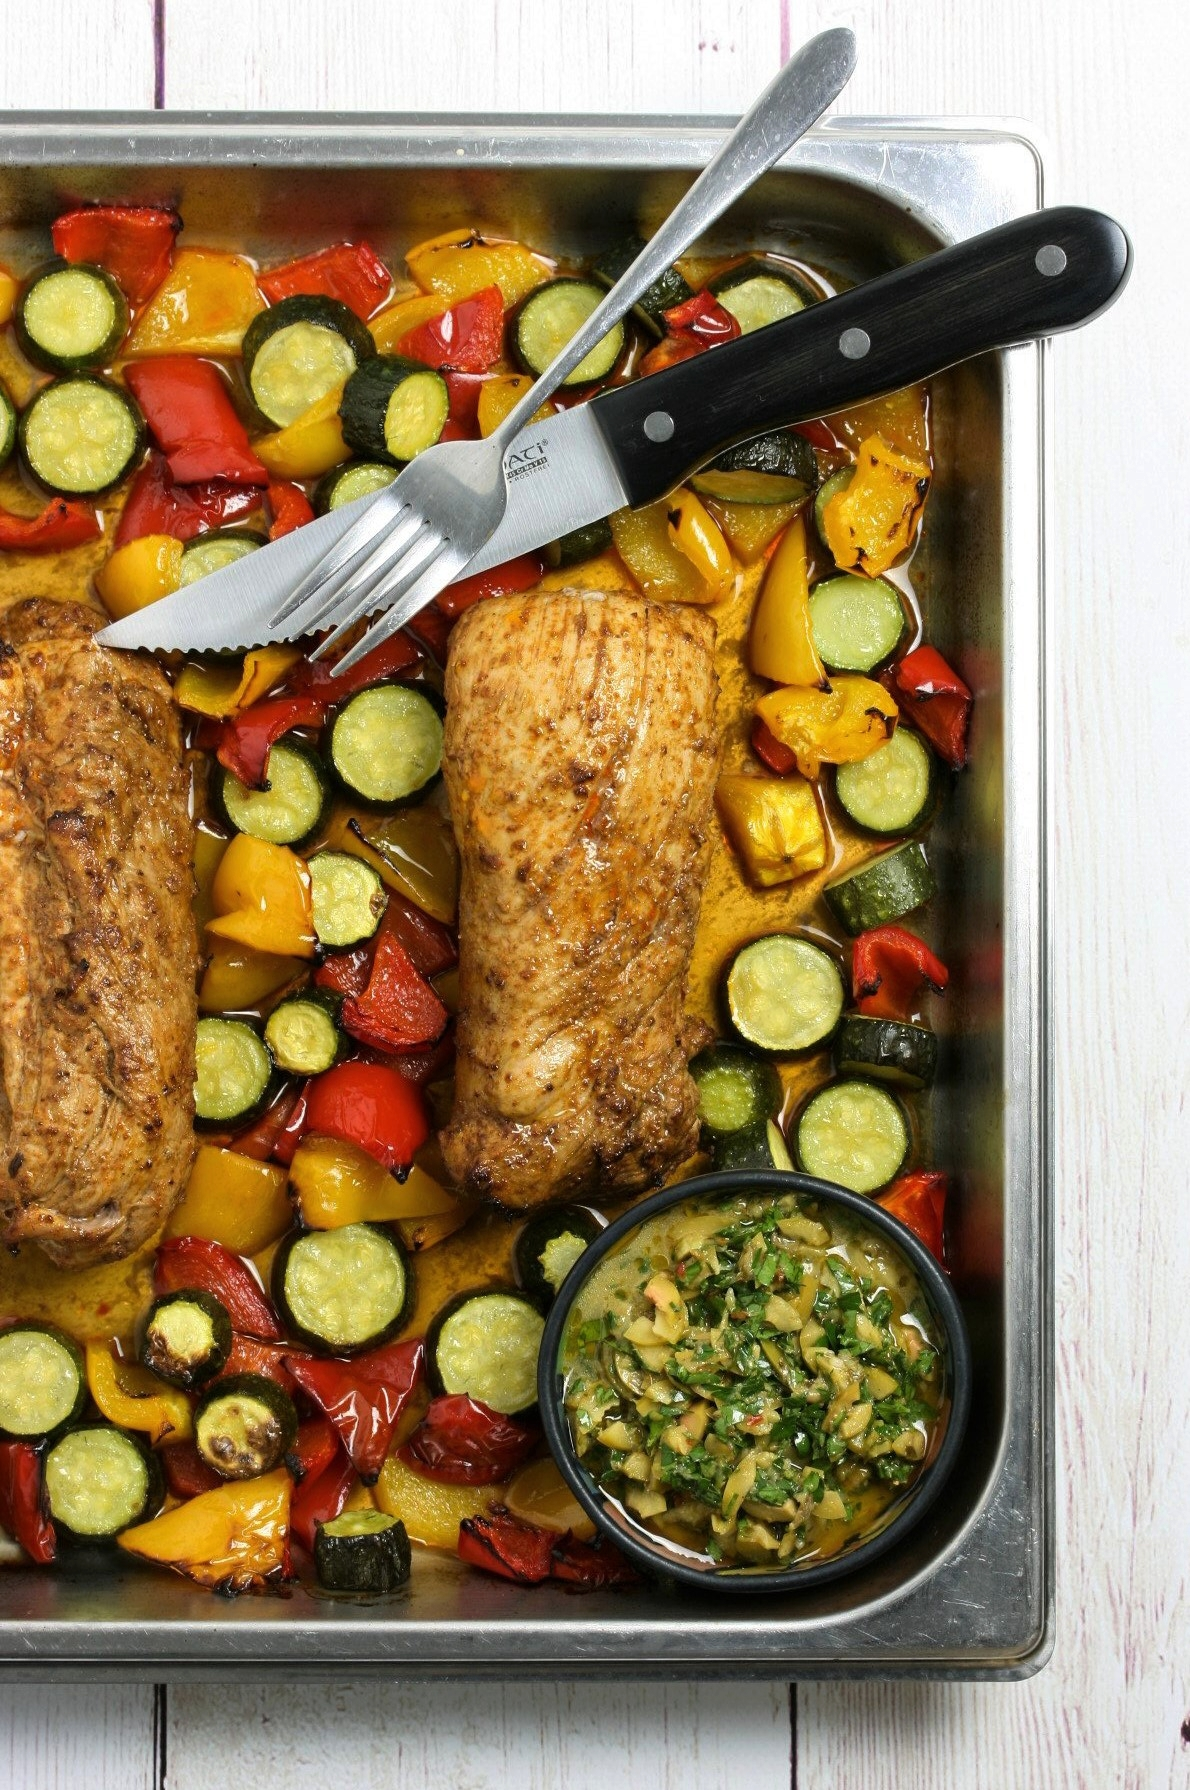 Steam oven pork tenderloin and mixed vegetables with salsa